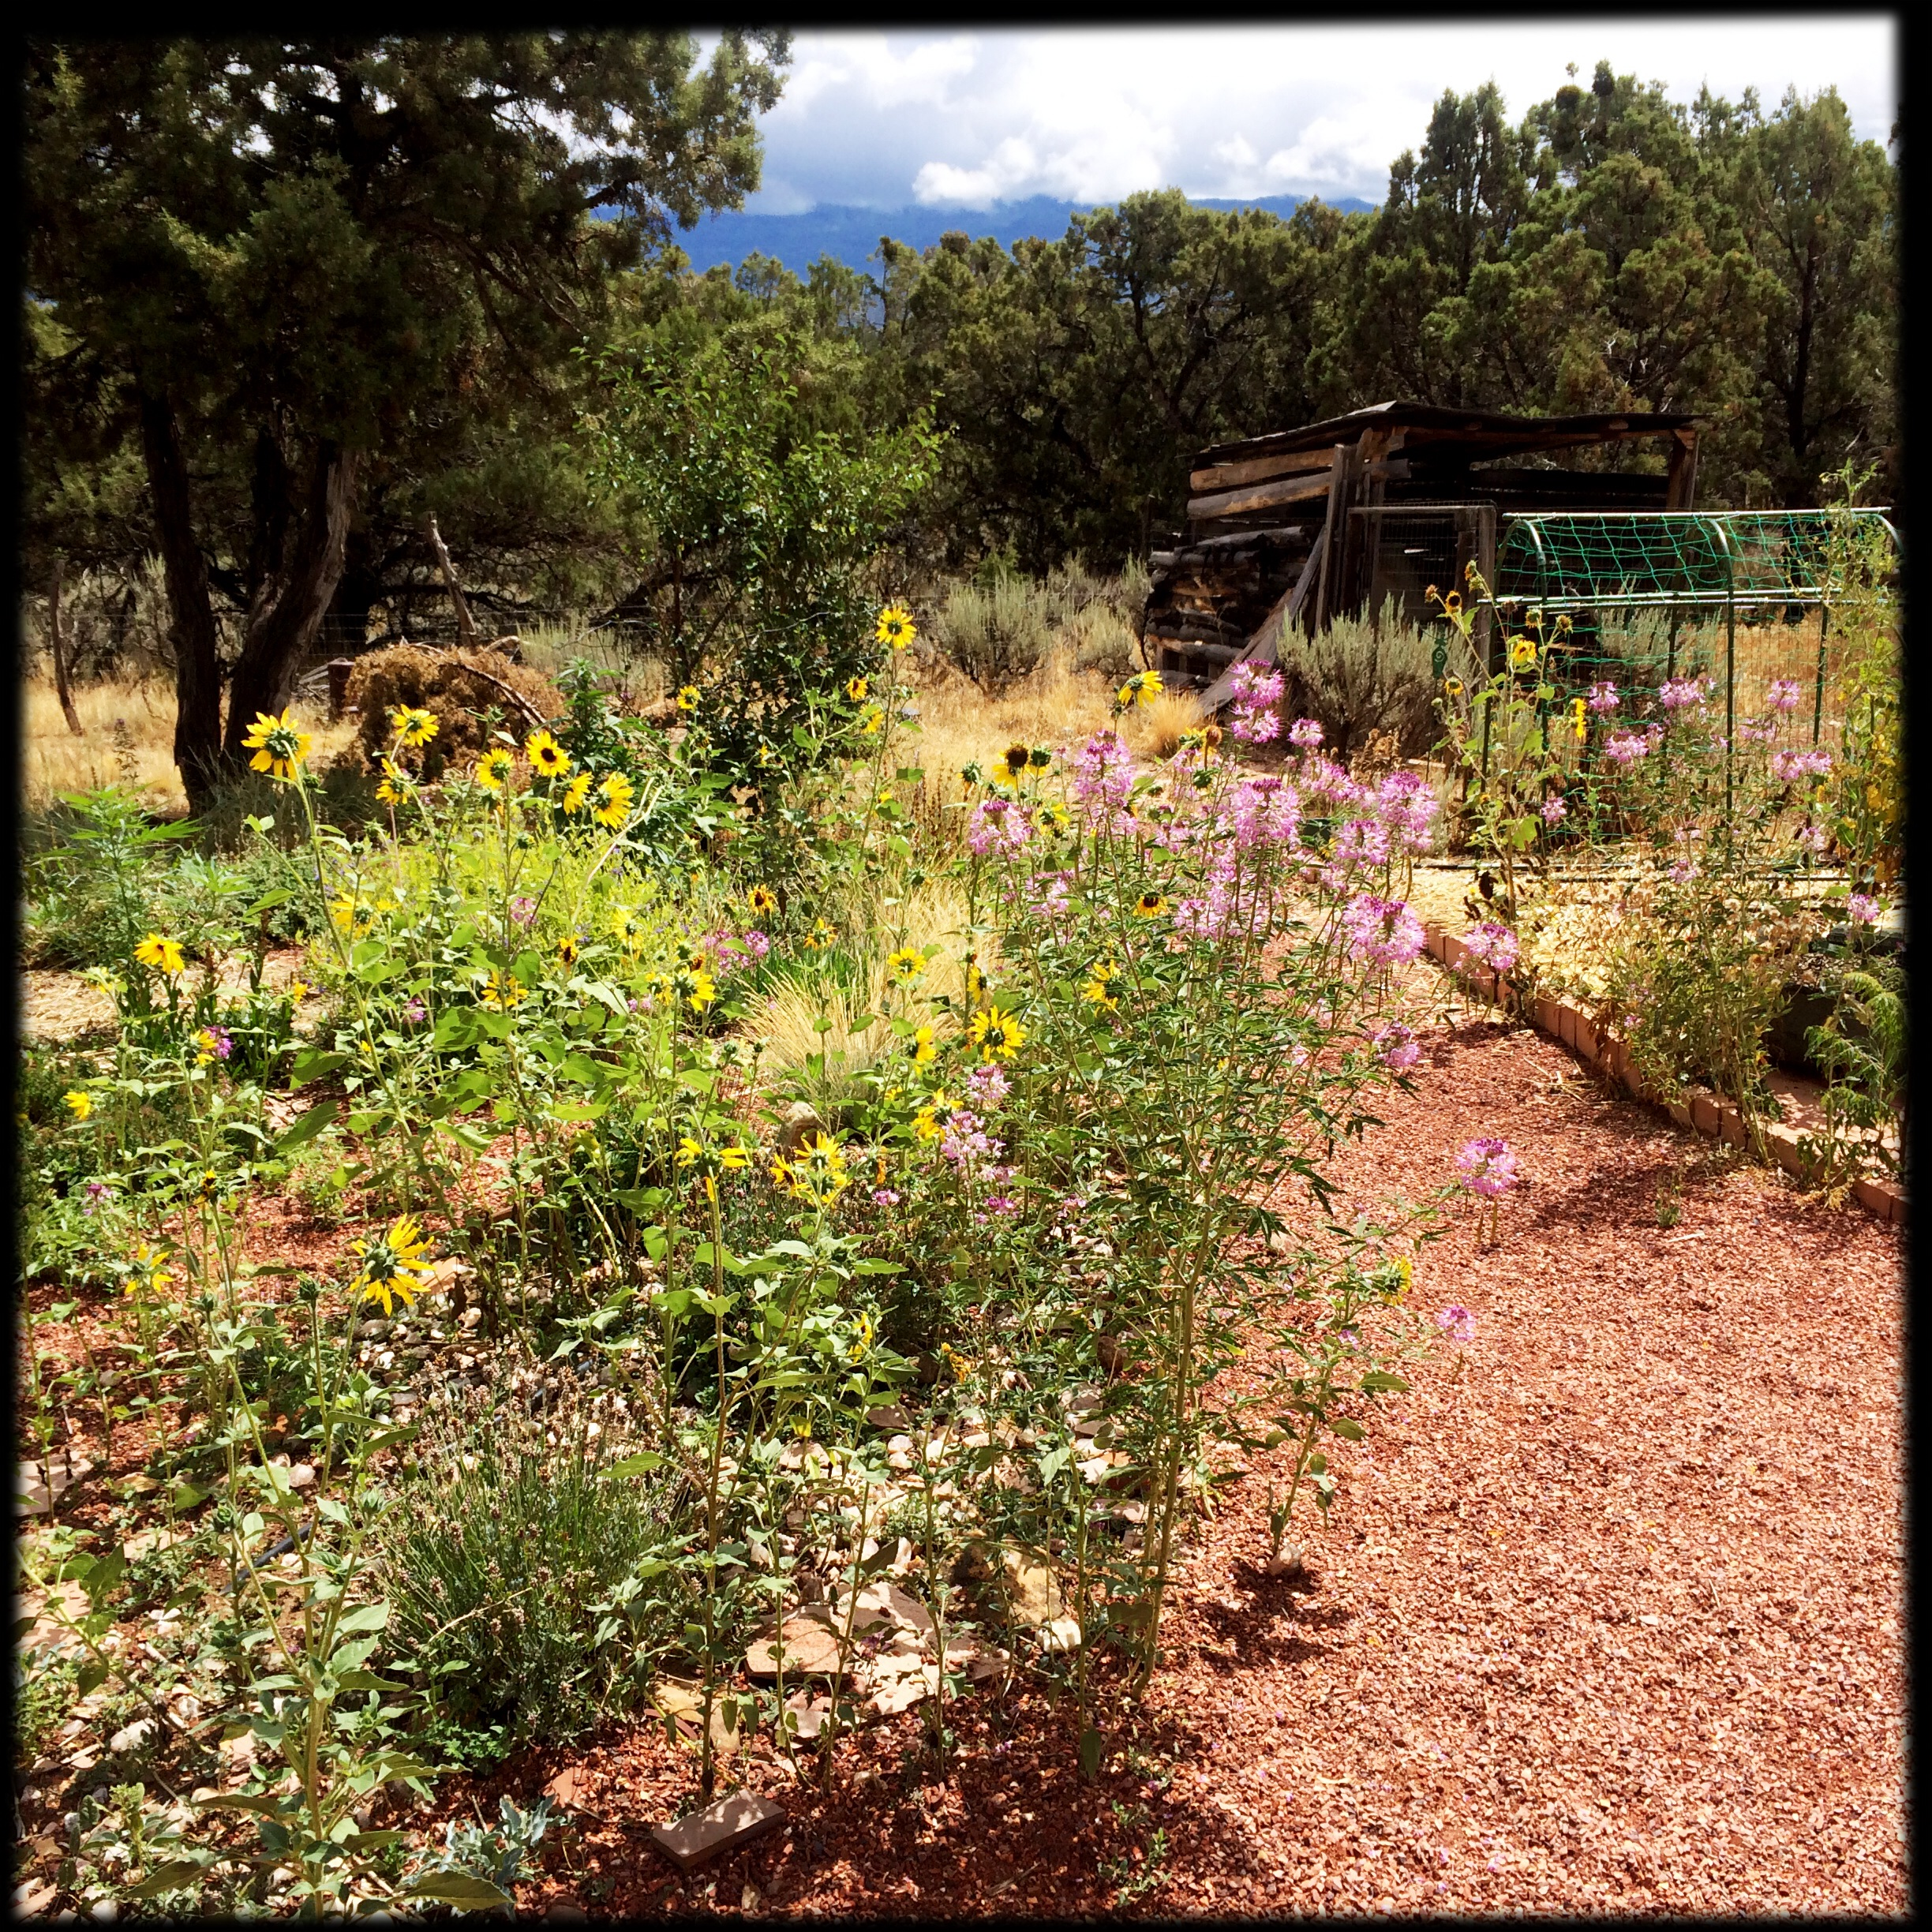 Beeplant and sunflowers grow with abandon in the hottest, driest part of the garden, a lush late summer banquet for bees and birds.